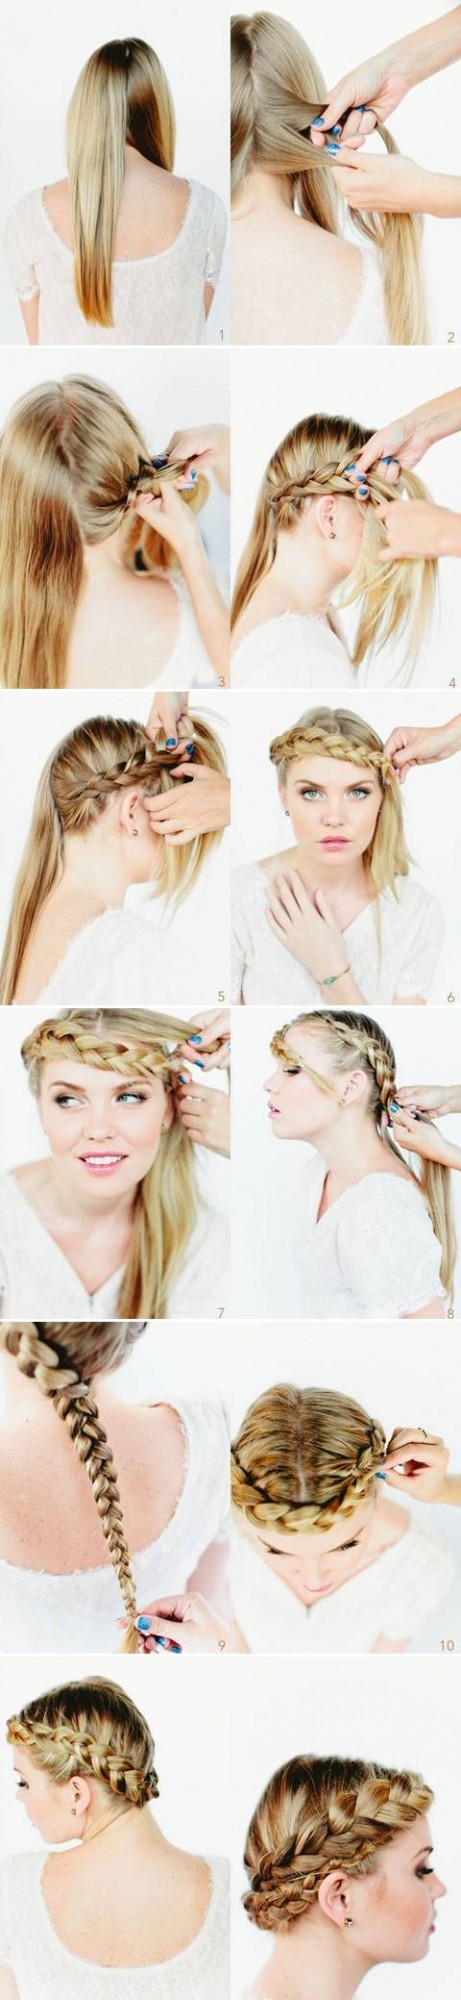 Miraculous 20 Amazing Braided Hairstyles Tutorials Style Motivation Hairstyle Inspiration Daily Dogsangcom